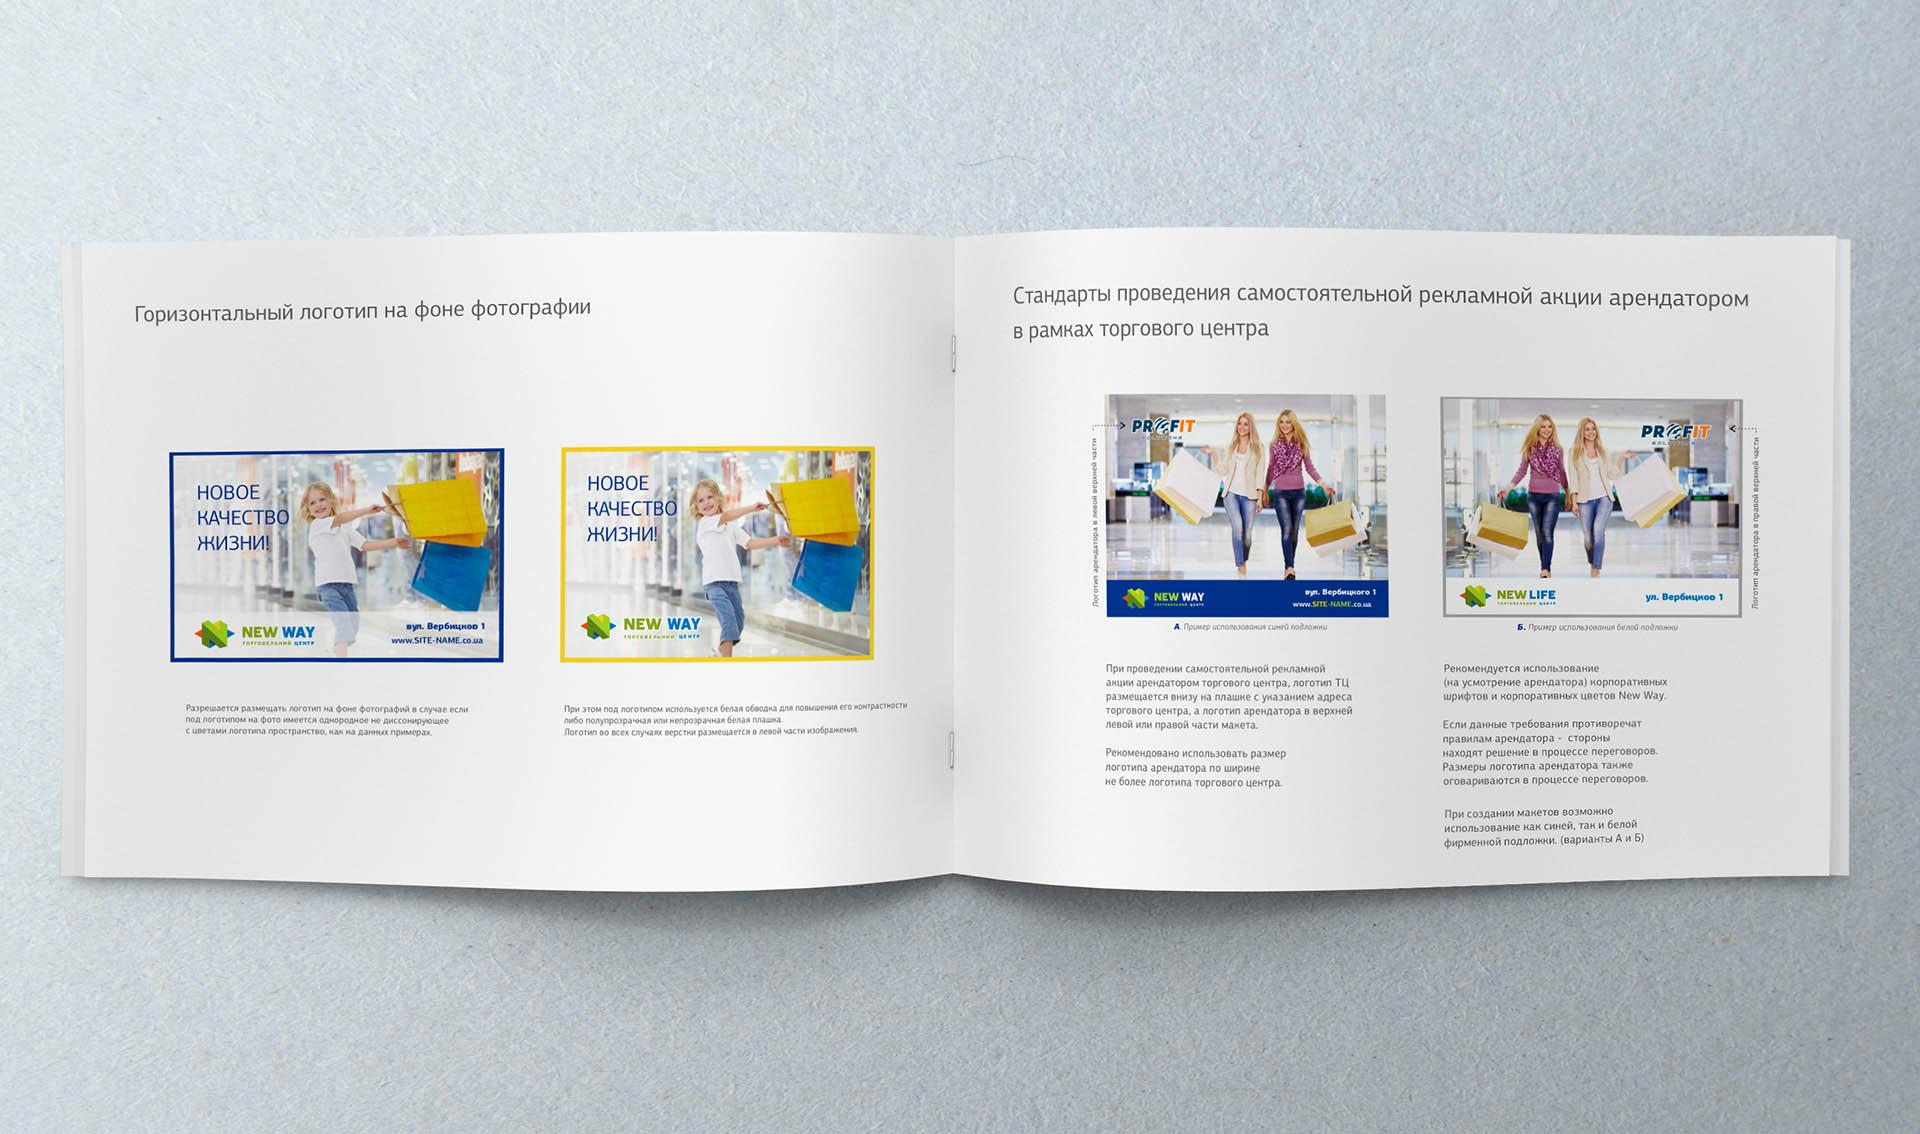 Creating of the corporate identity of the shopping center